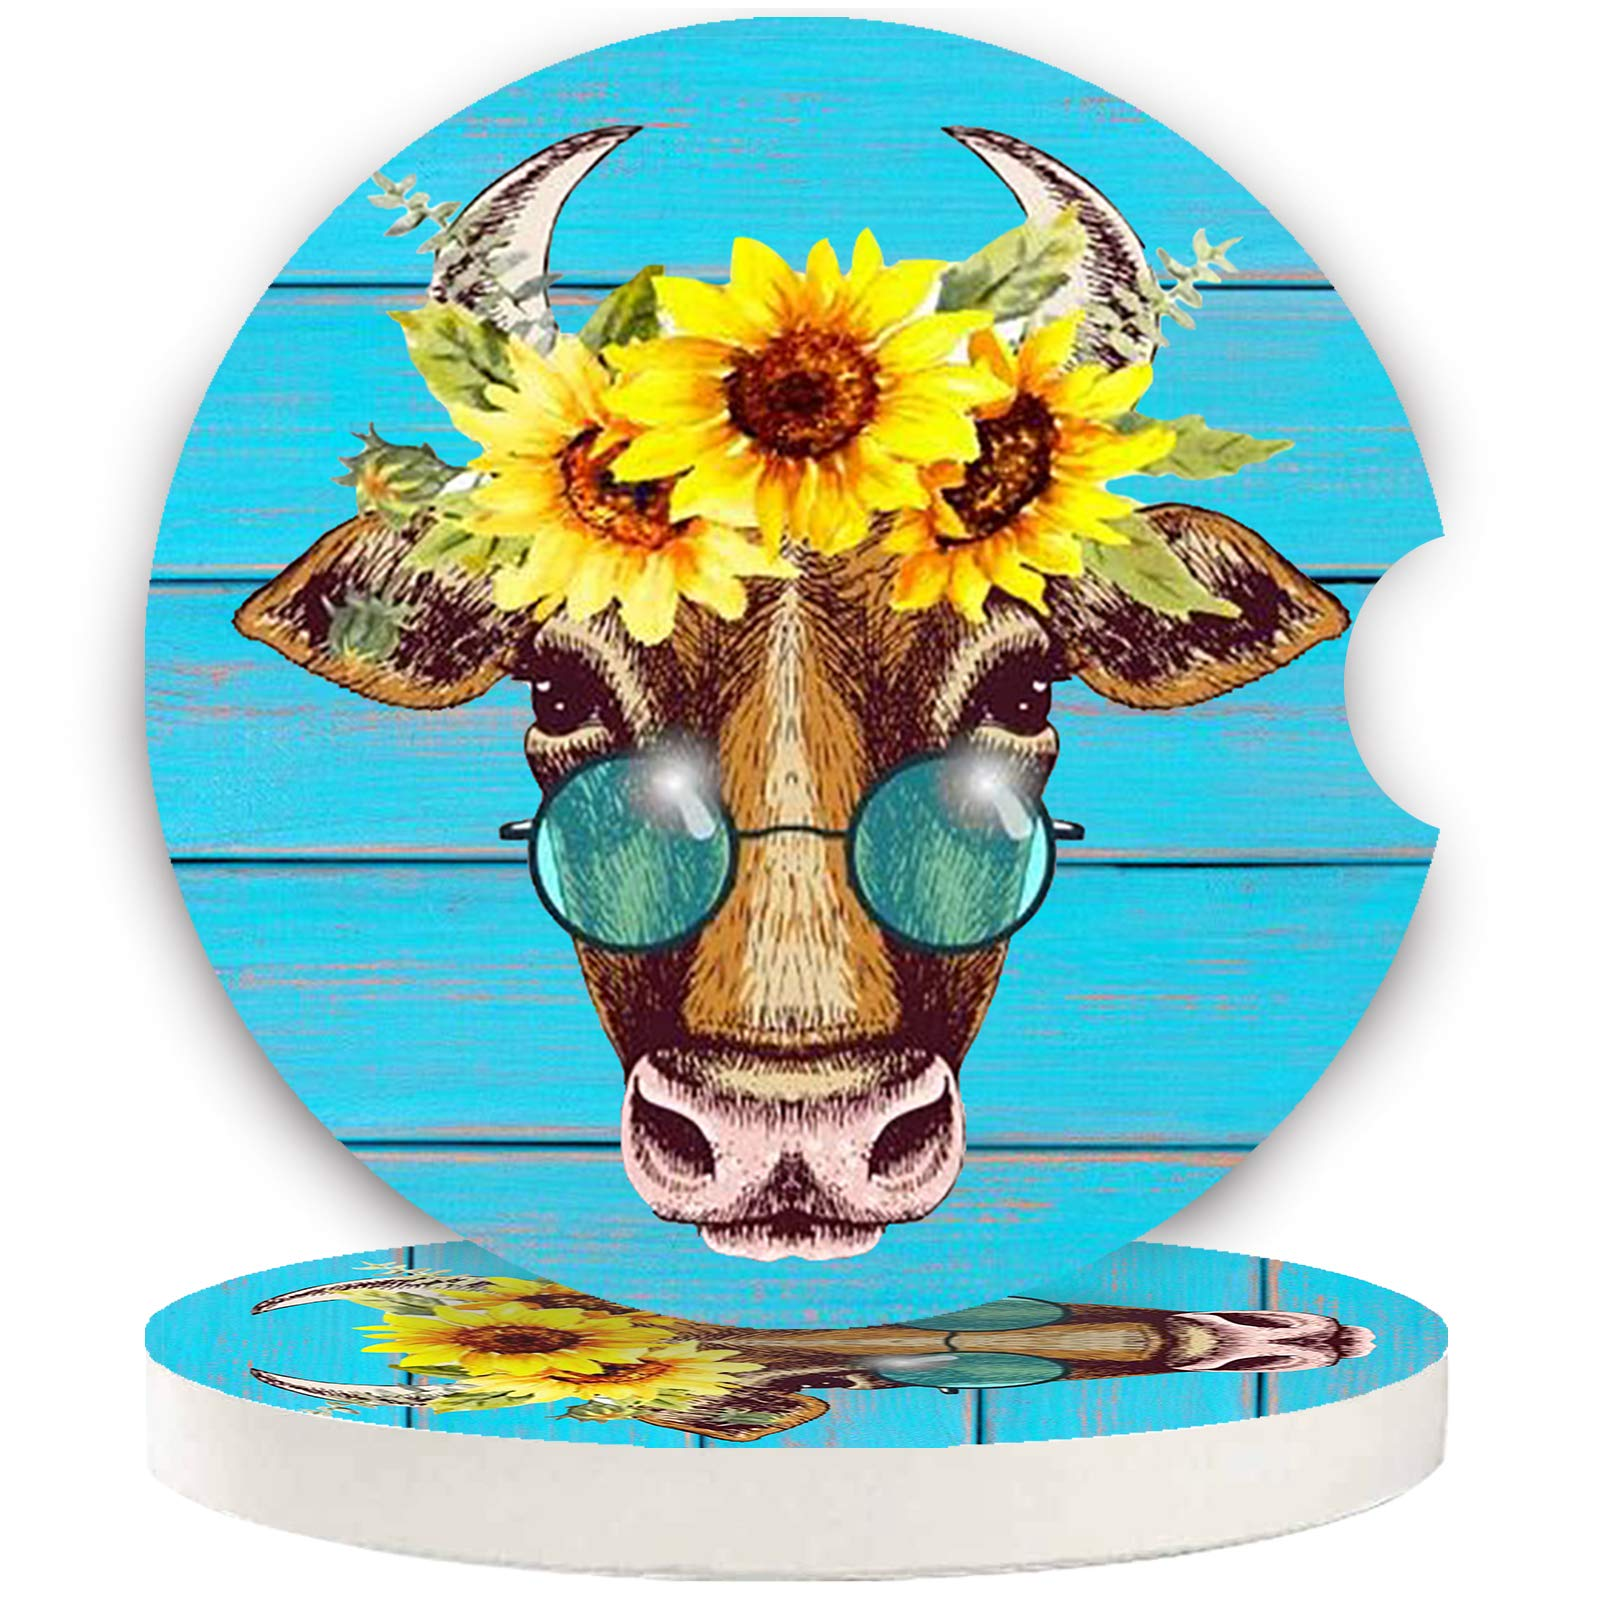 """Car Coasters Pack of 2, Fun Sunflower Cow Design Absorb Condensation for Protect The Car Cup Holder and Keep Your car Clean, Small 2.56"""" Diameter, Easy Removal of Auto Cupholder(Blue Cow)"""